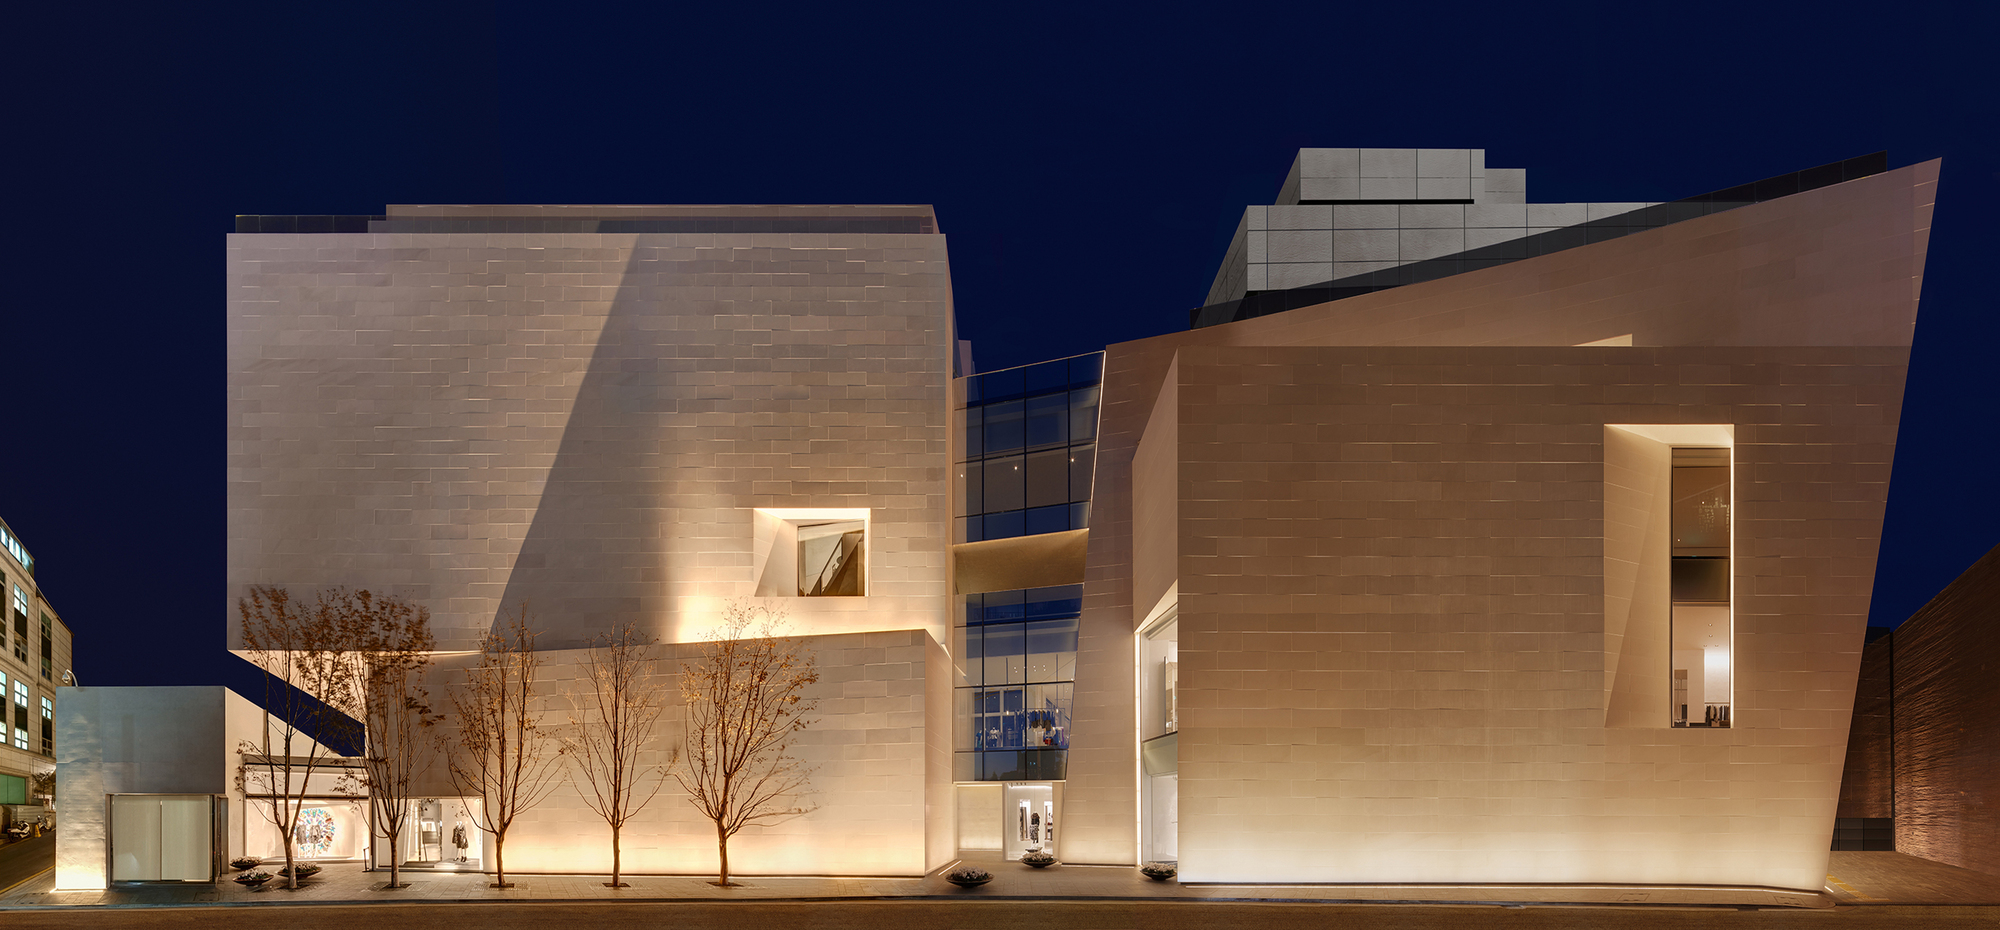 Boontheshop peter marino architect archdaily for The architect